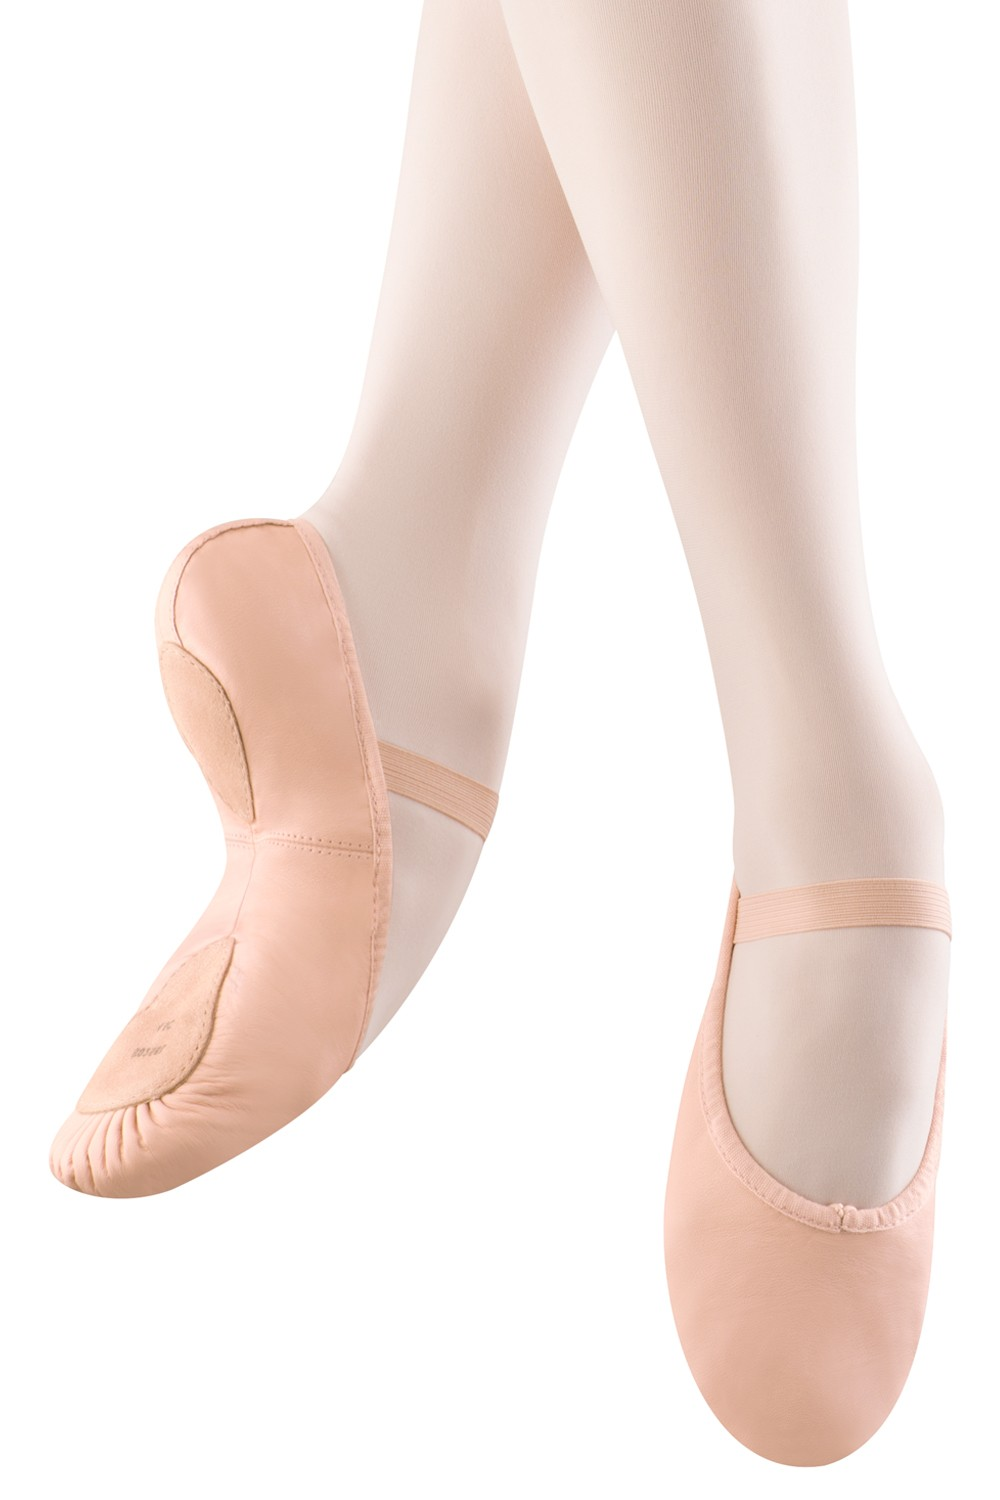 Arise Split Sole   Women's Ballet Shoes